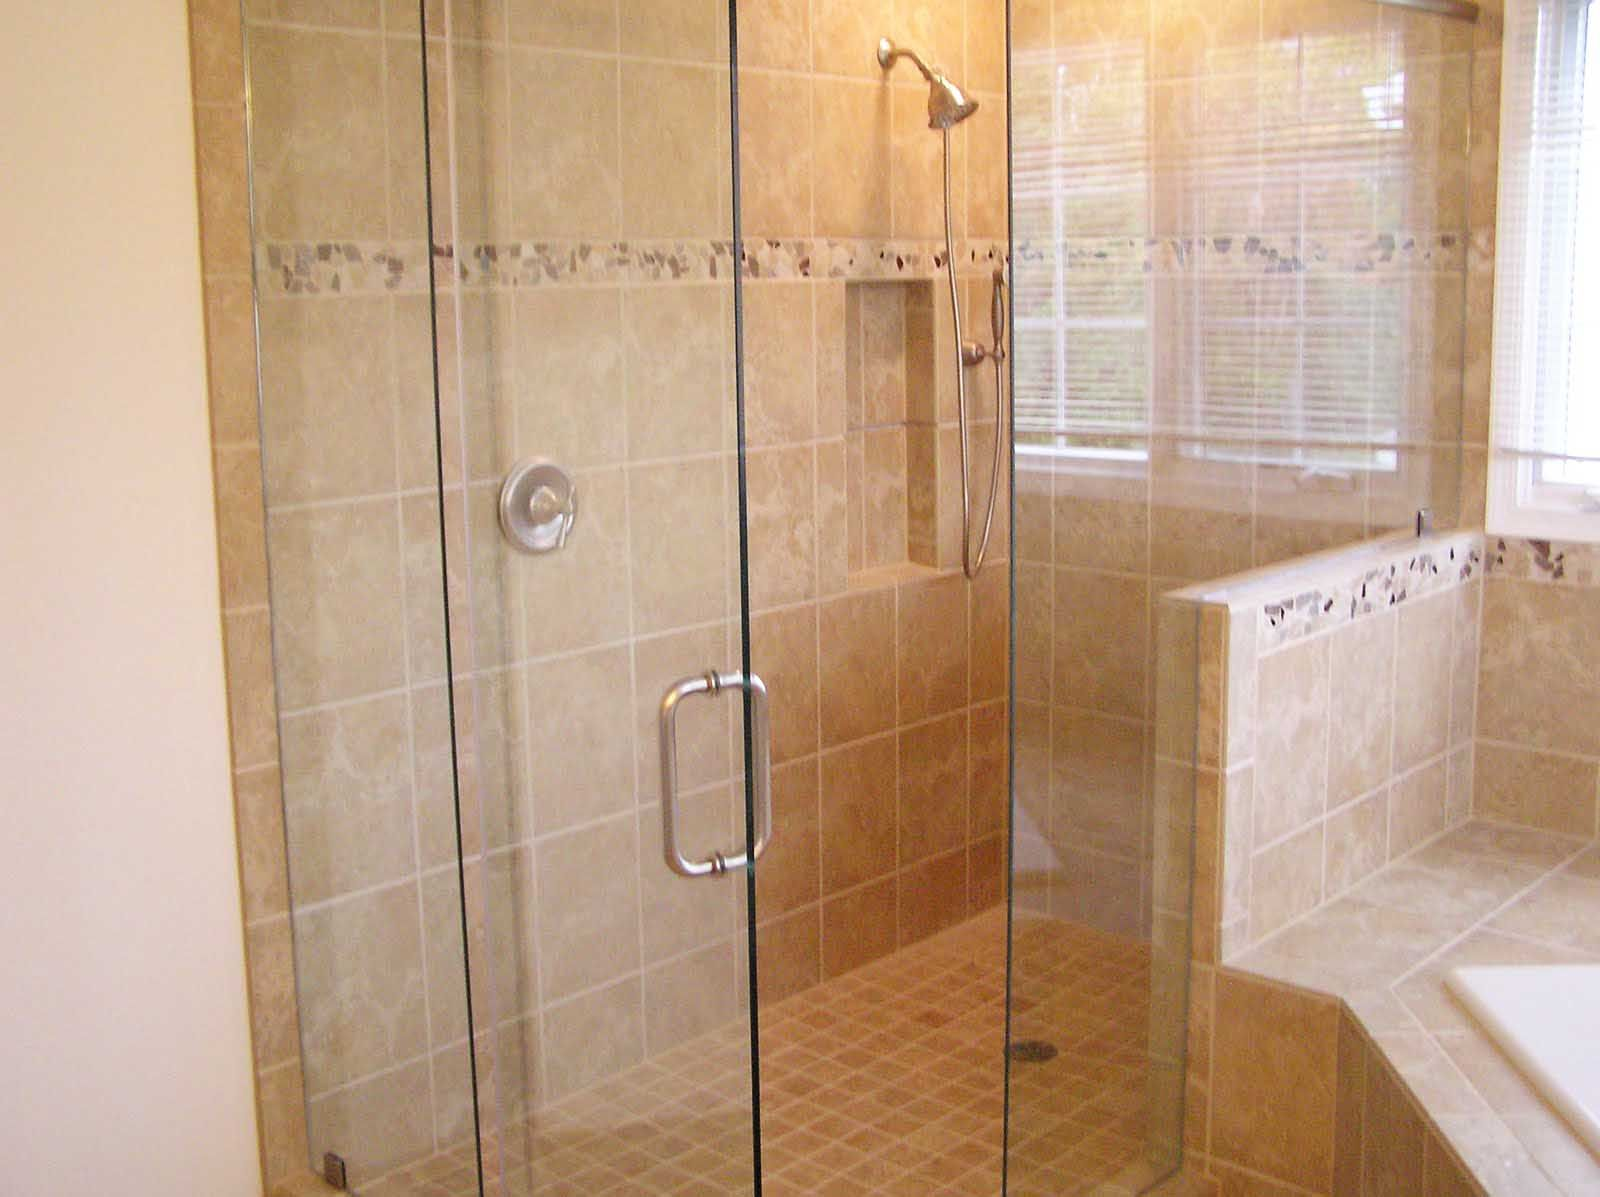 Bathroom Shower Tile with Mesmerizing Textures and Motifs http